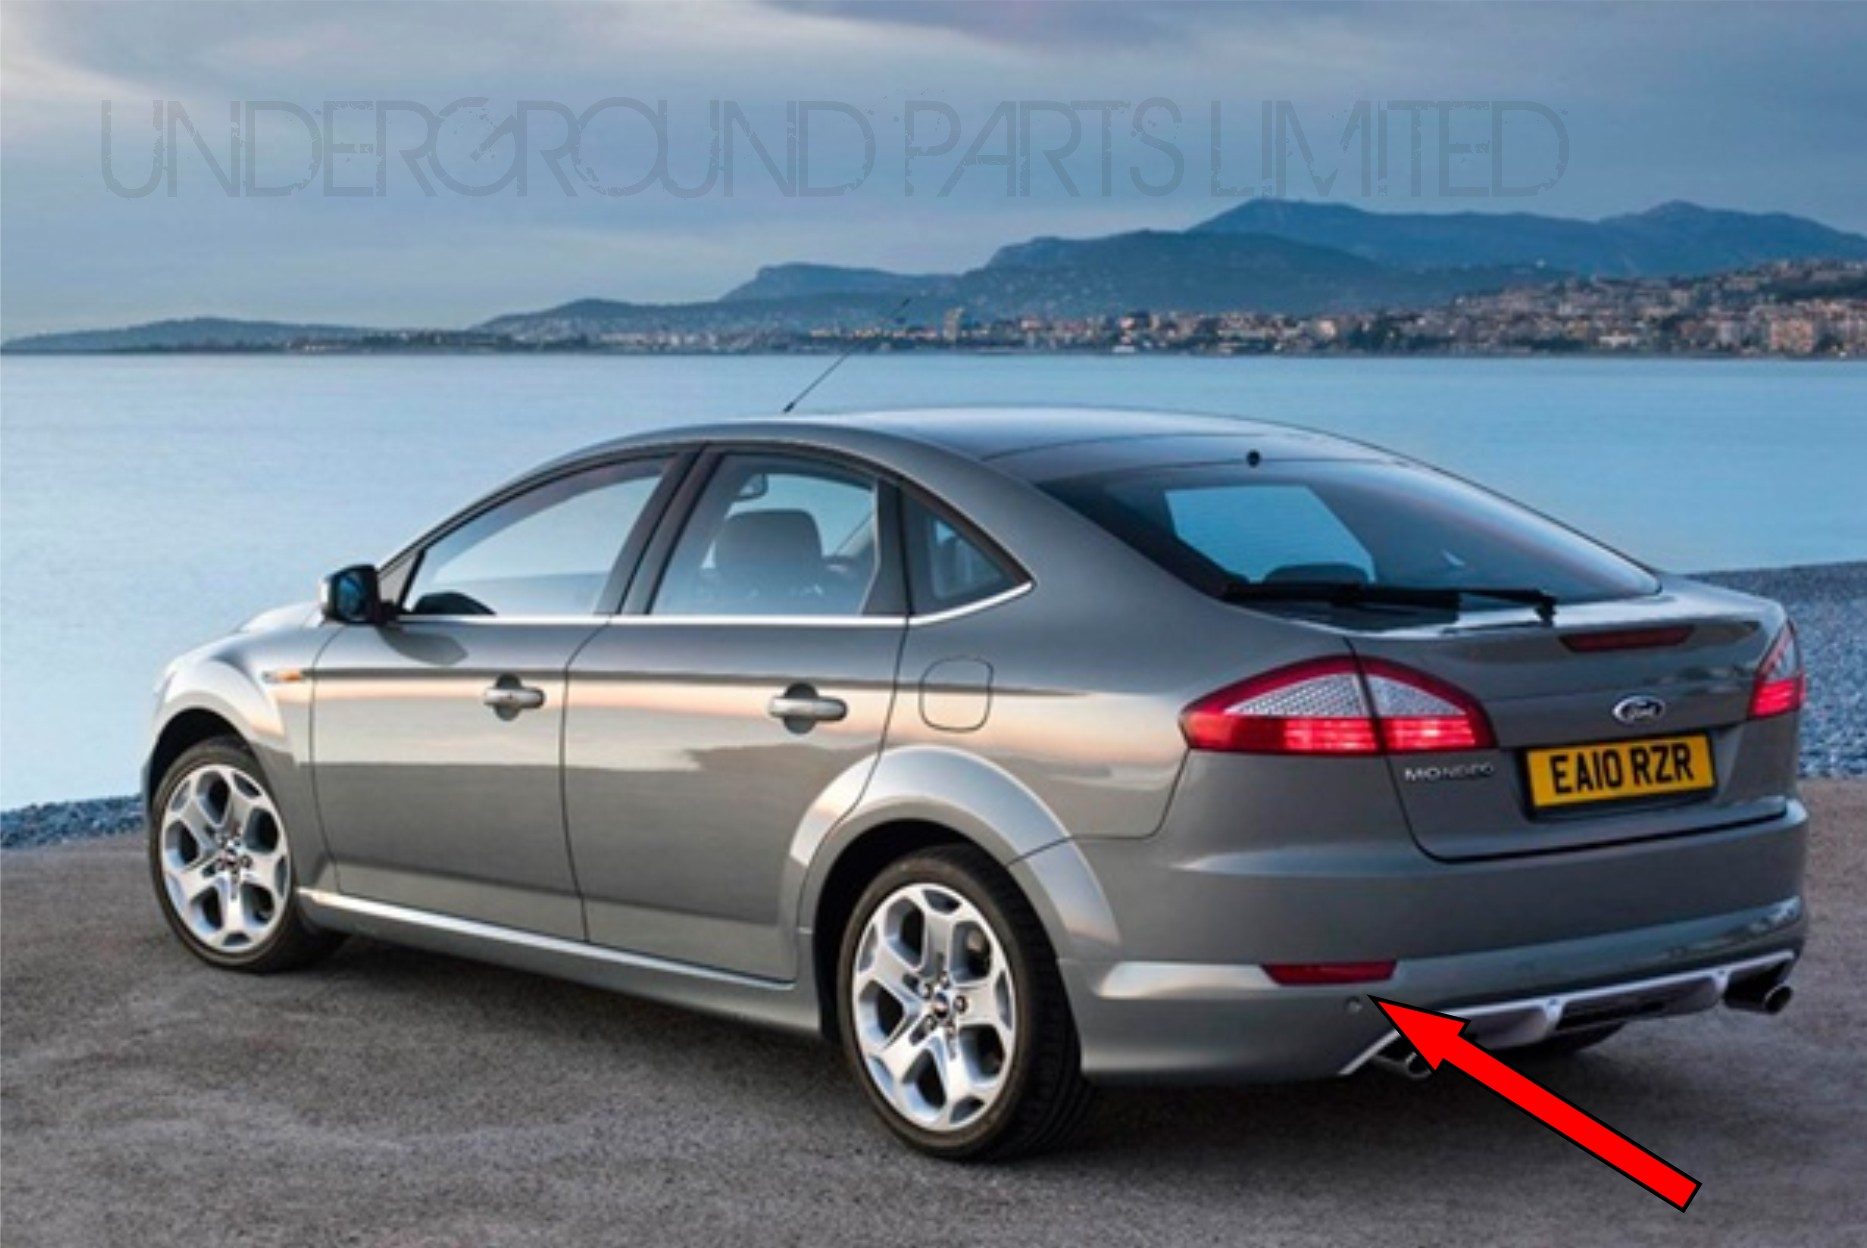 2012 Ford Mondeo #23